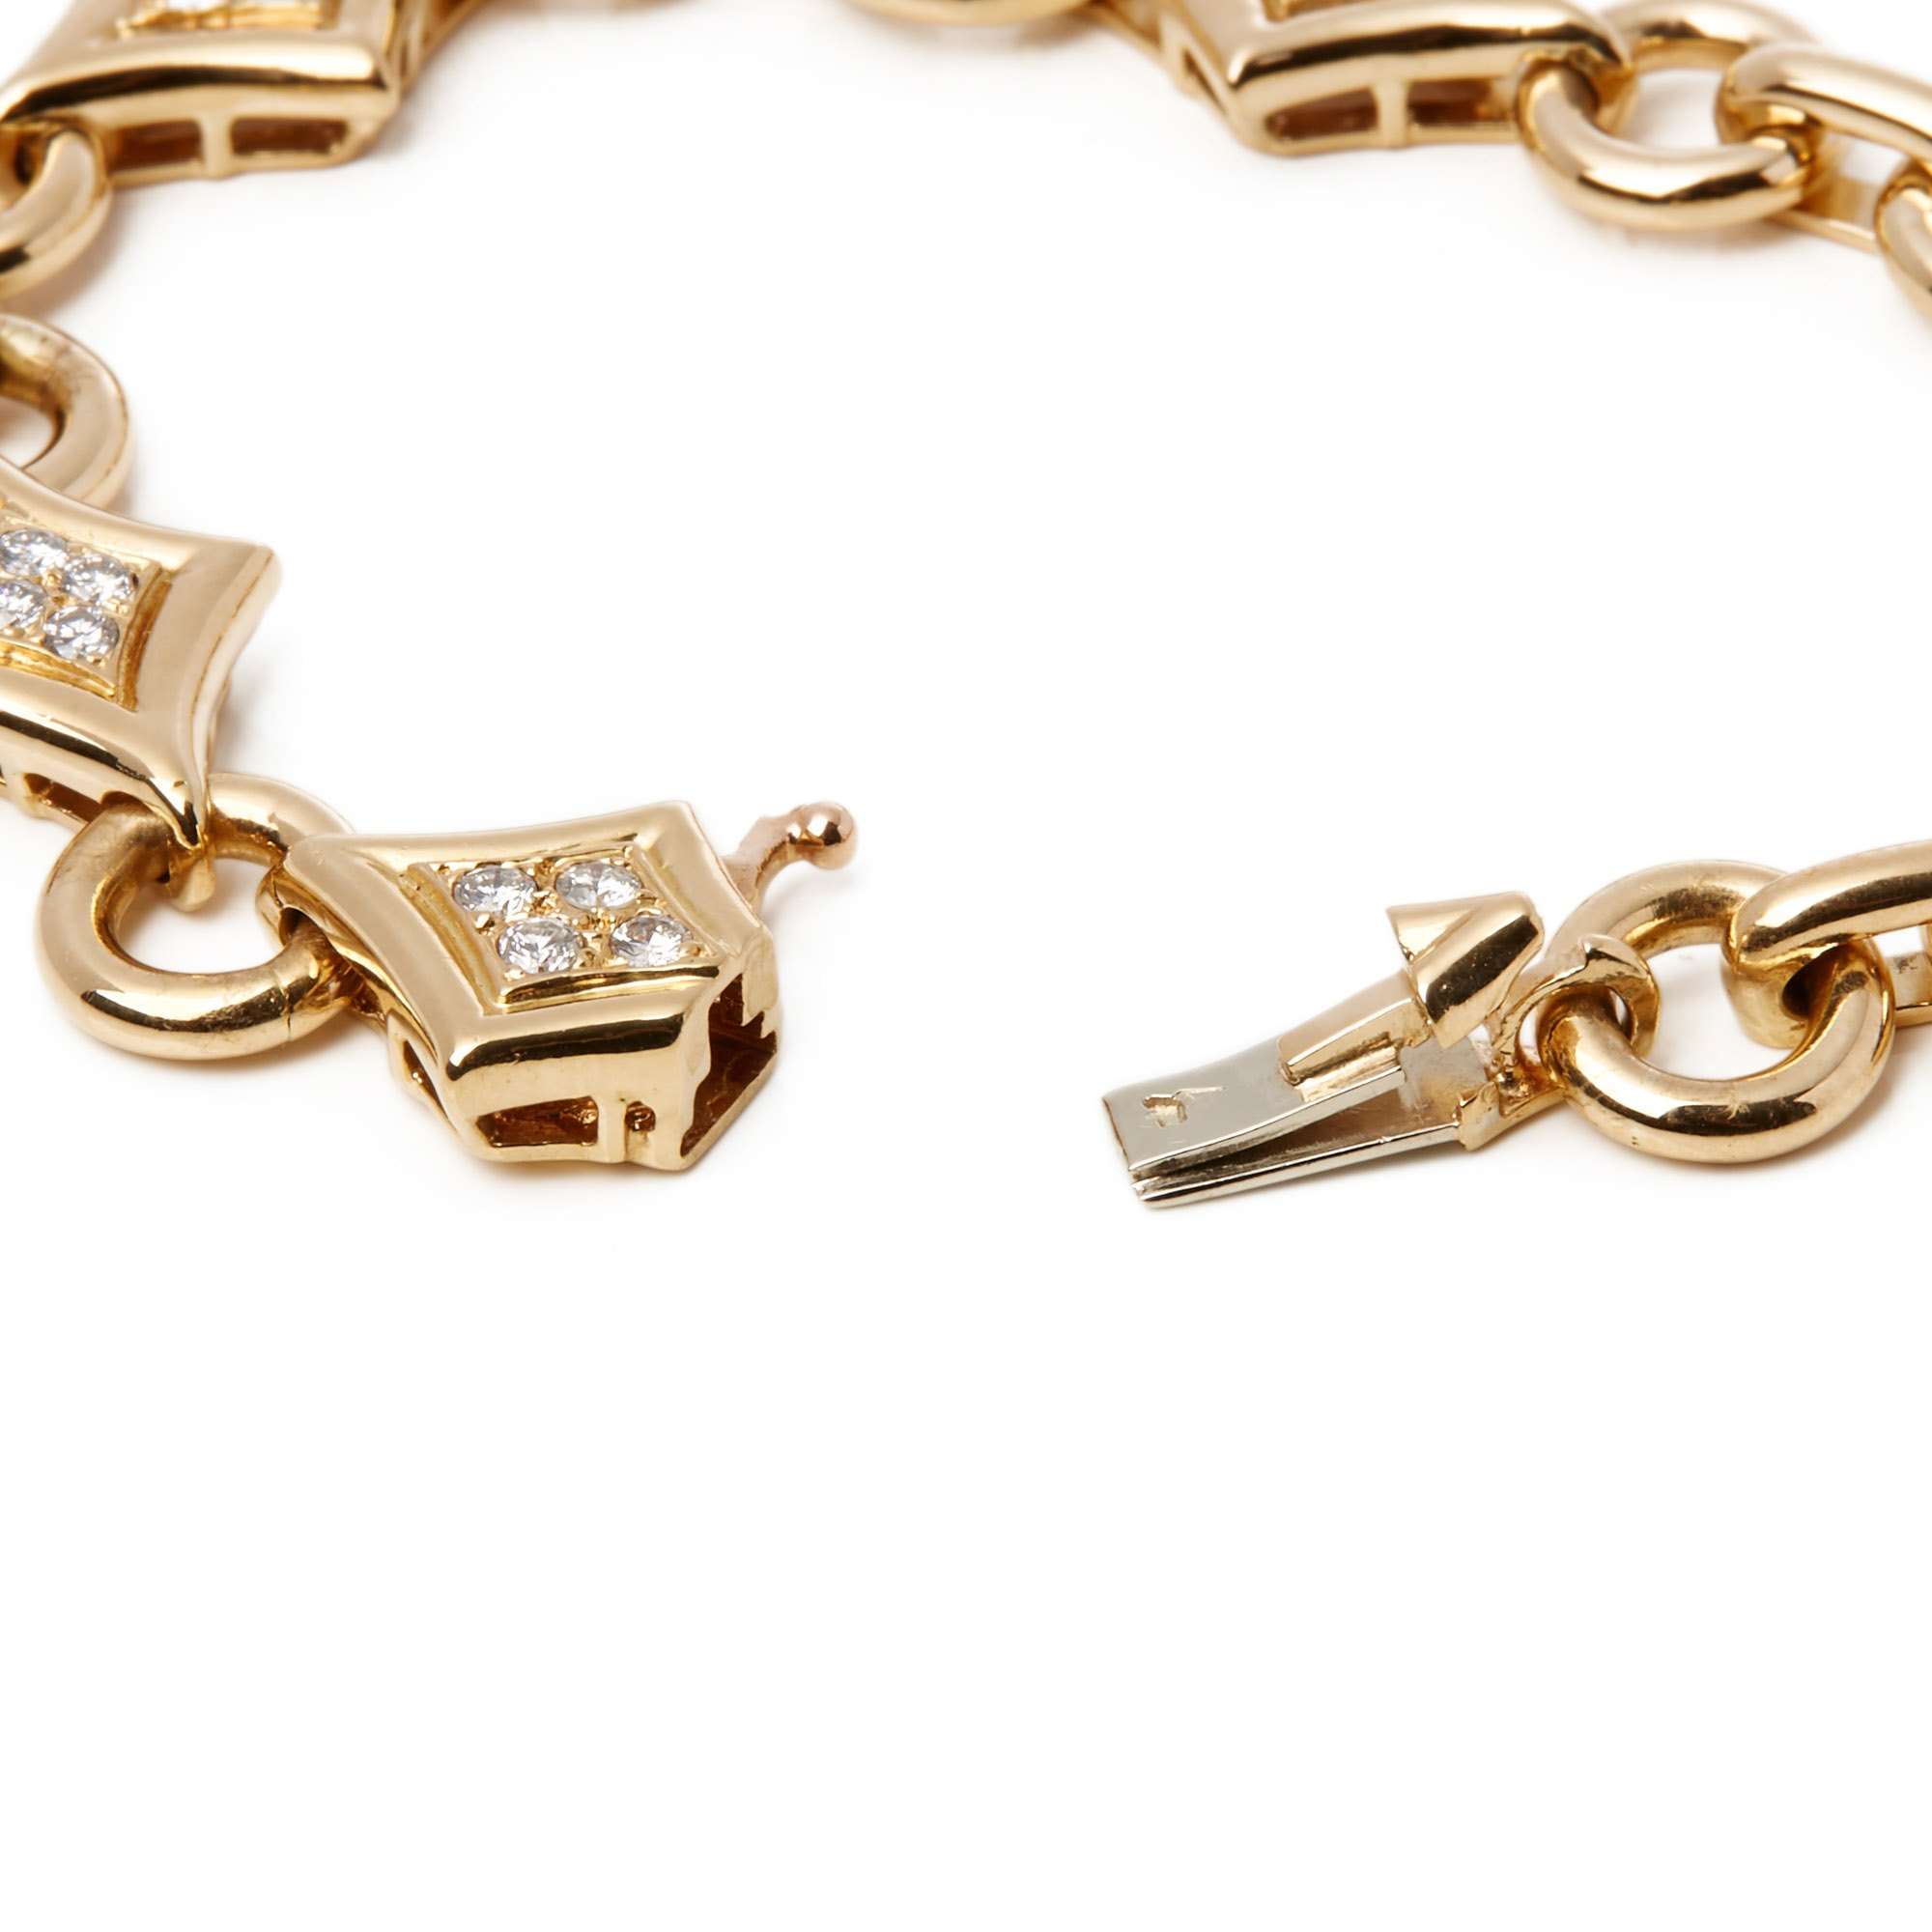 Van Cleef & Arpels 18k Yellow Gold Fancy Link Diamond Bracelet